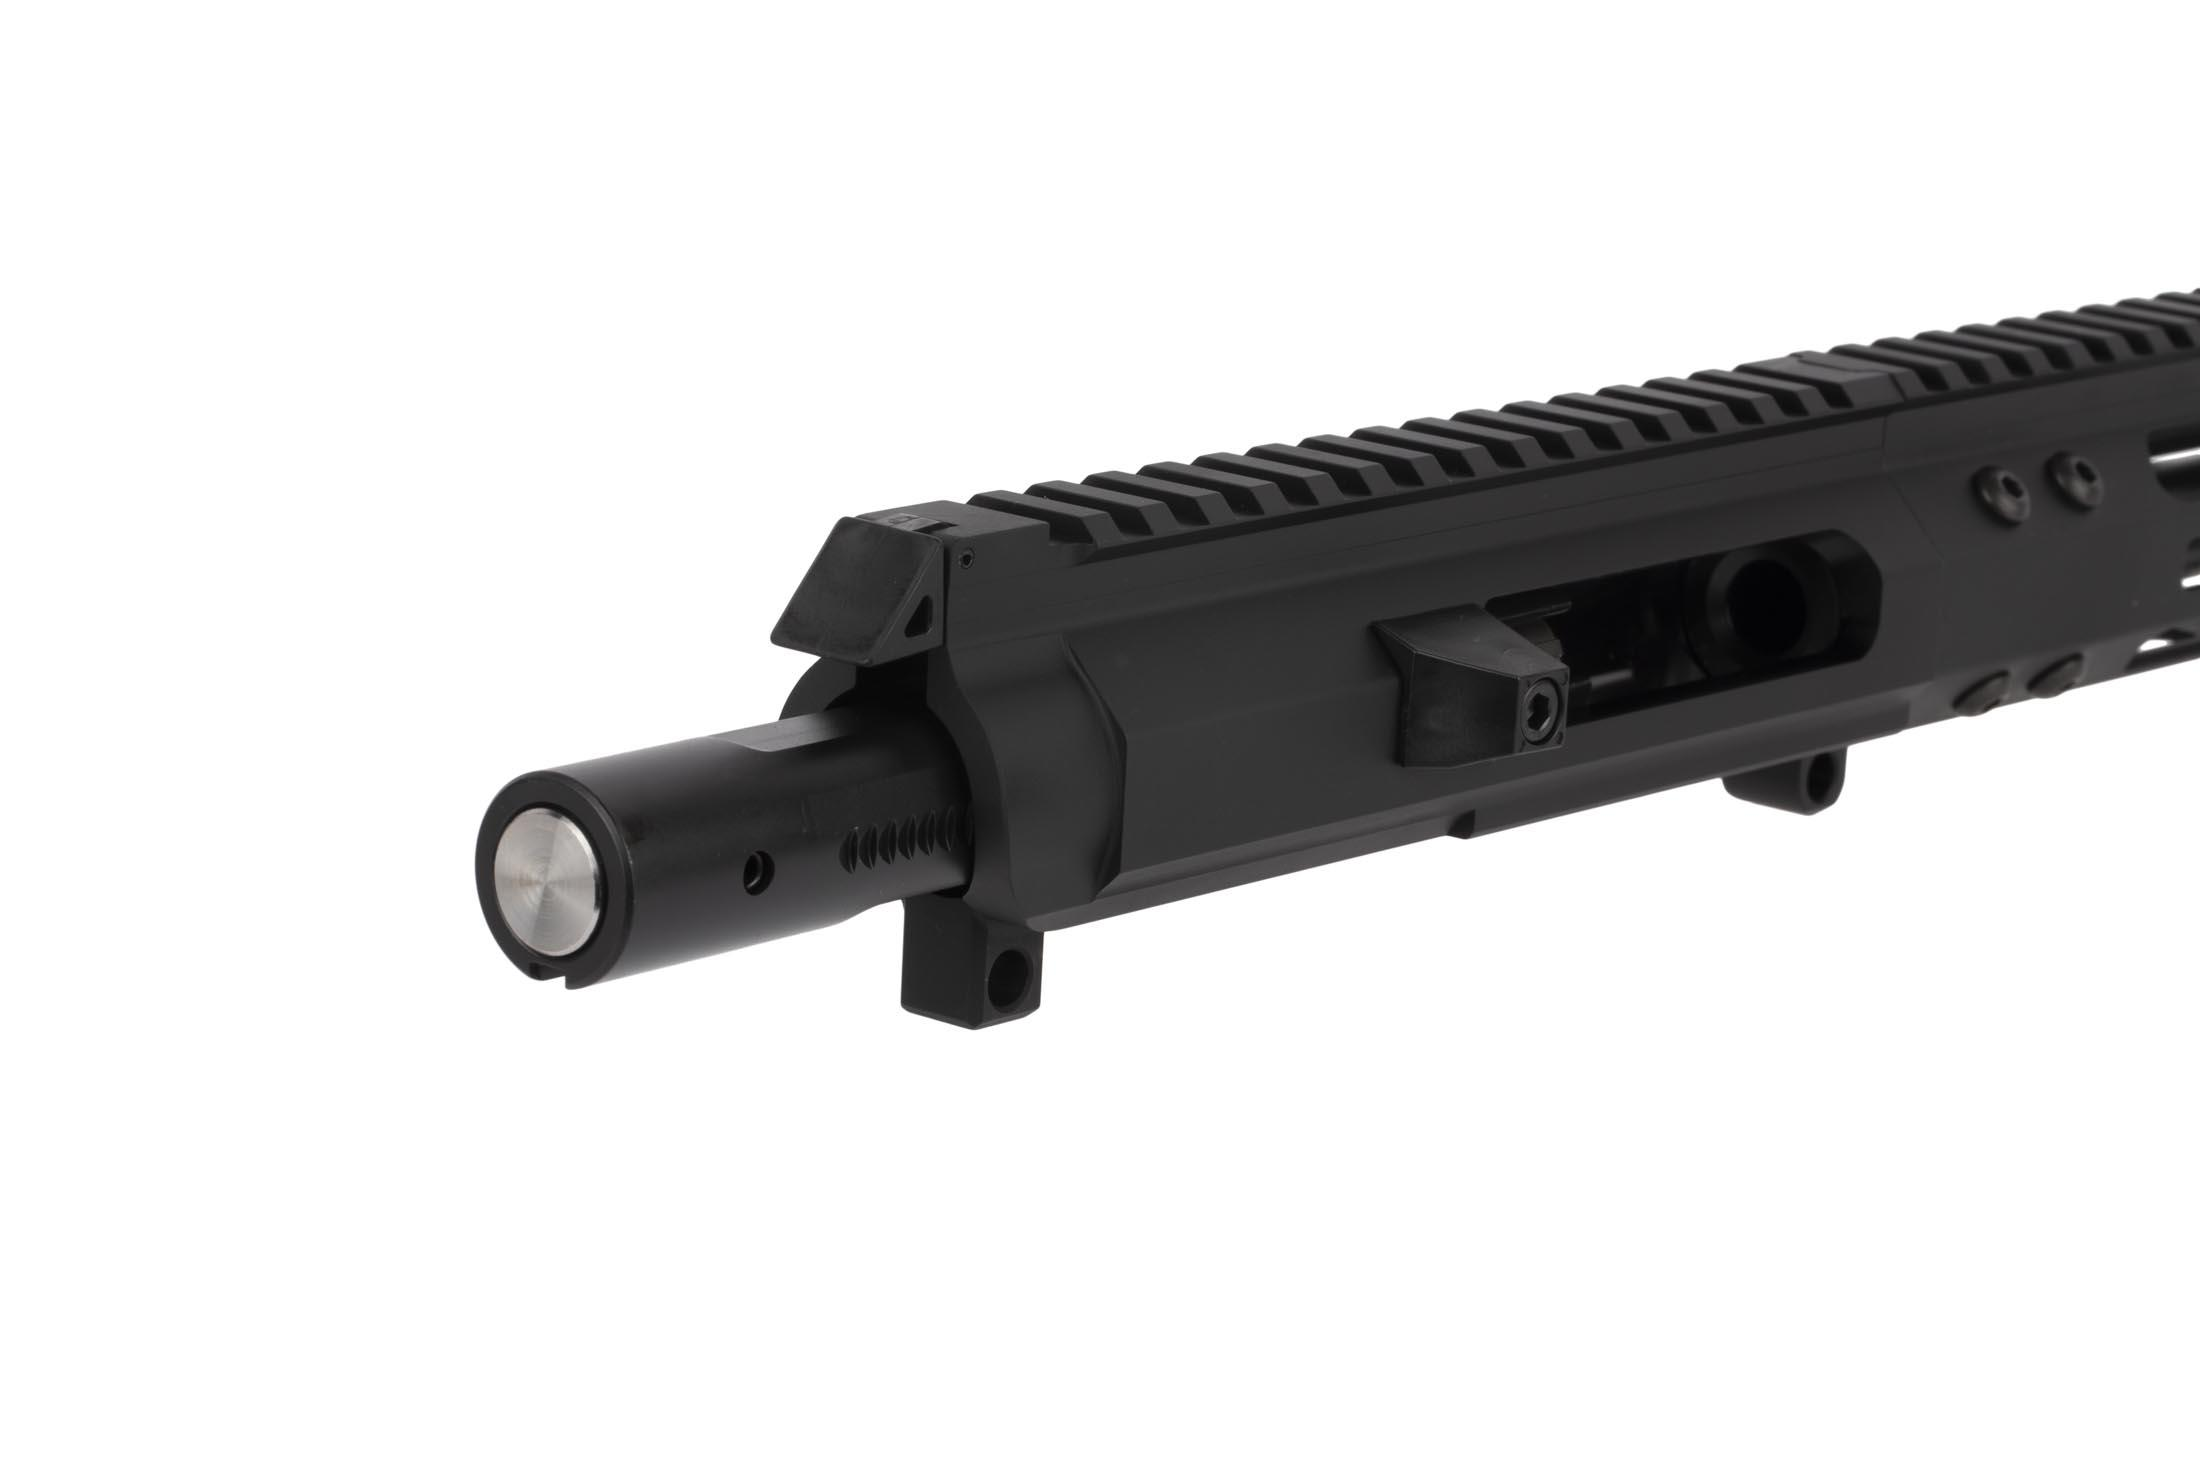 Foxtrot Mike Products Complete Upper 8 5